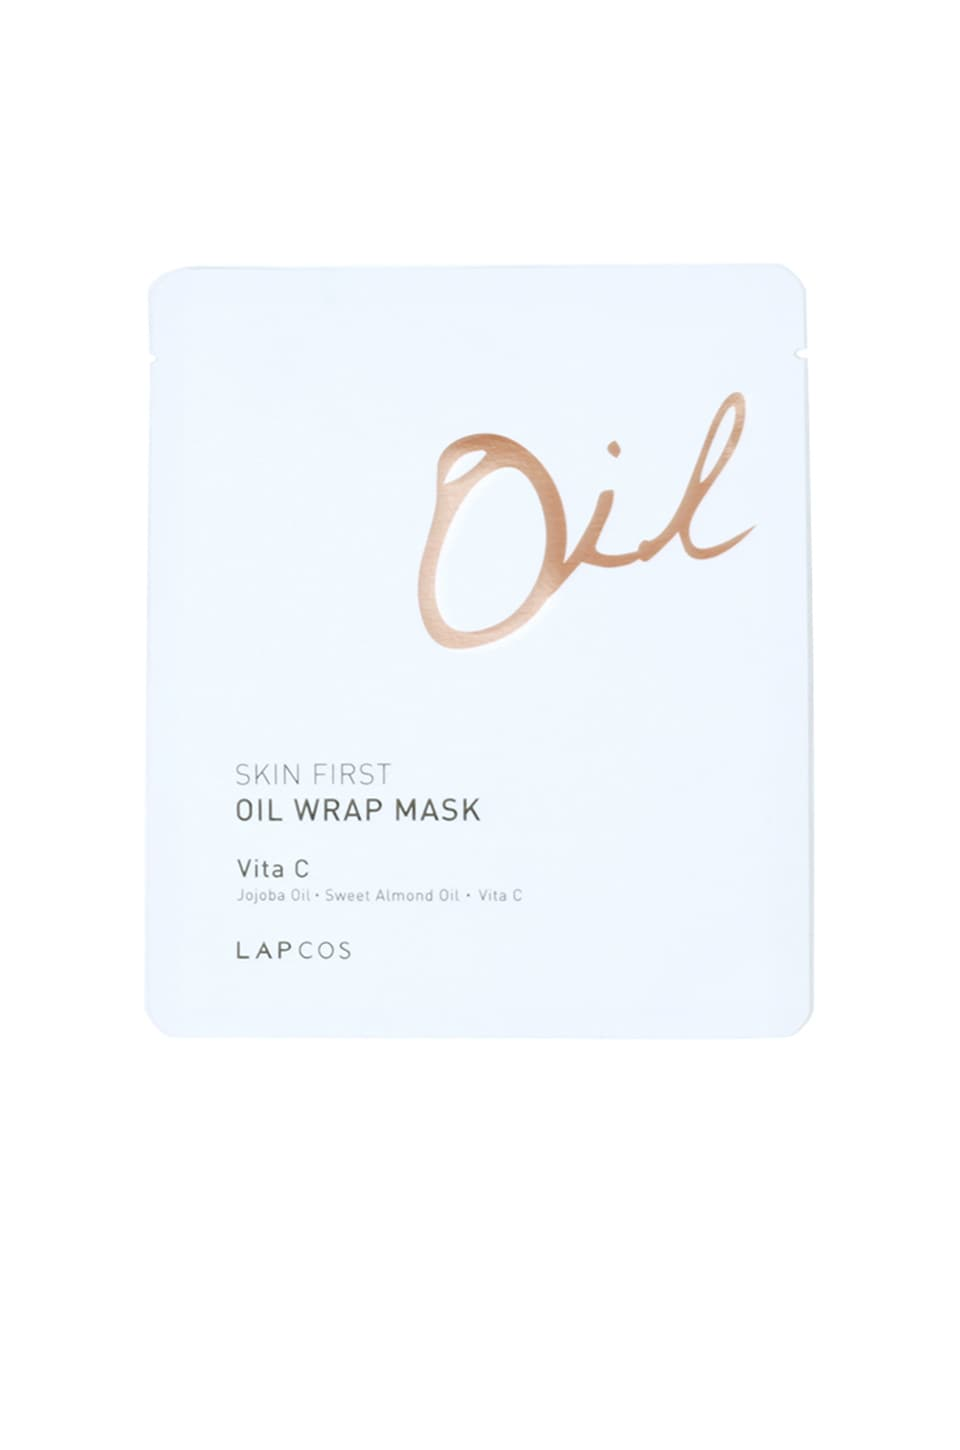 LAPCOS SKIN FIRST OIL WRAP MASK NO 3